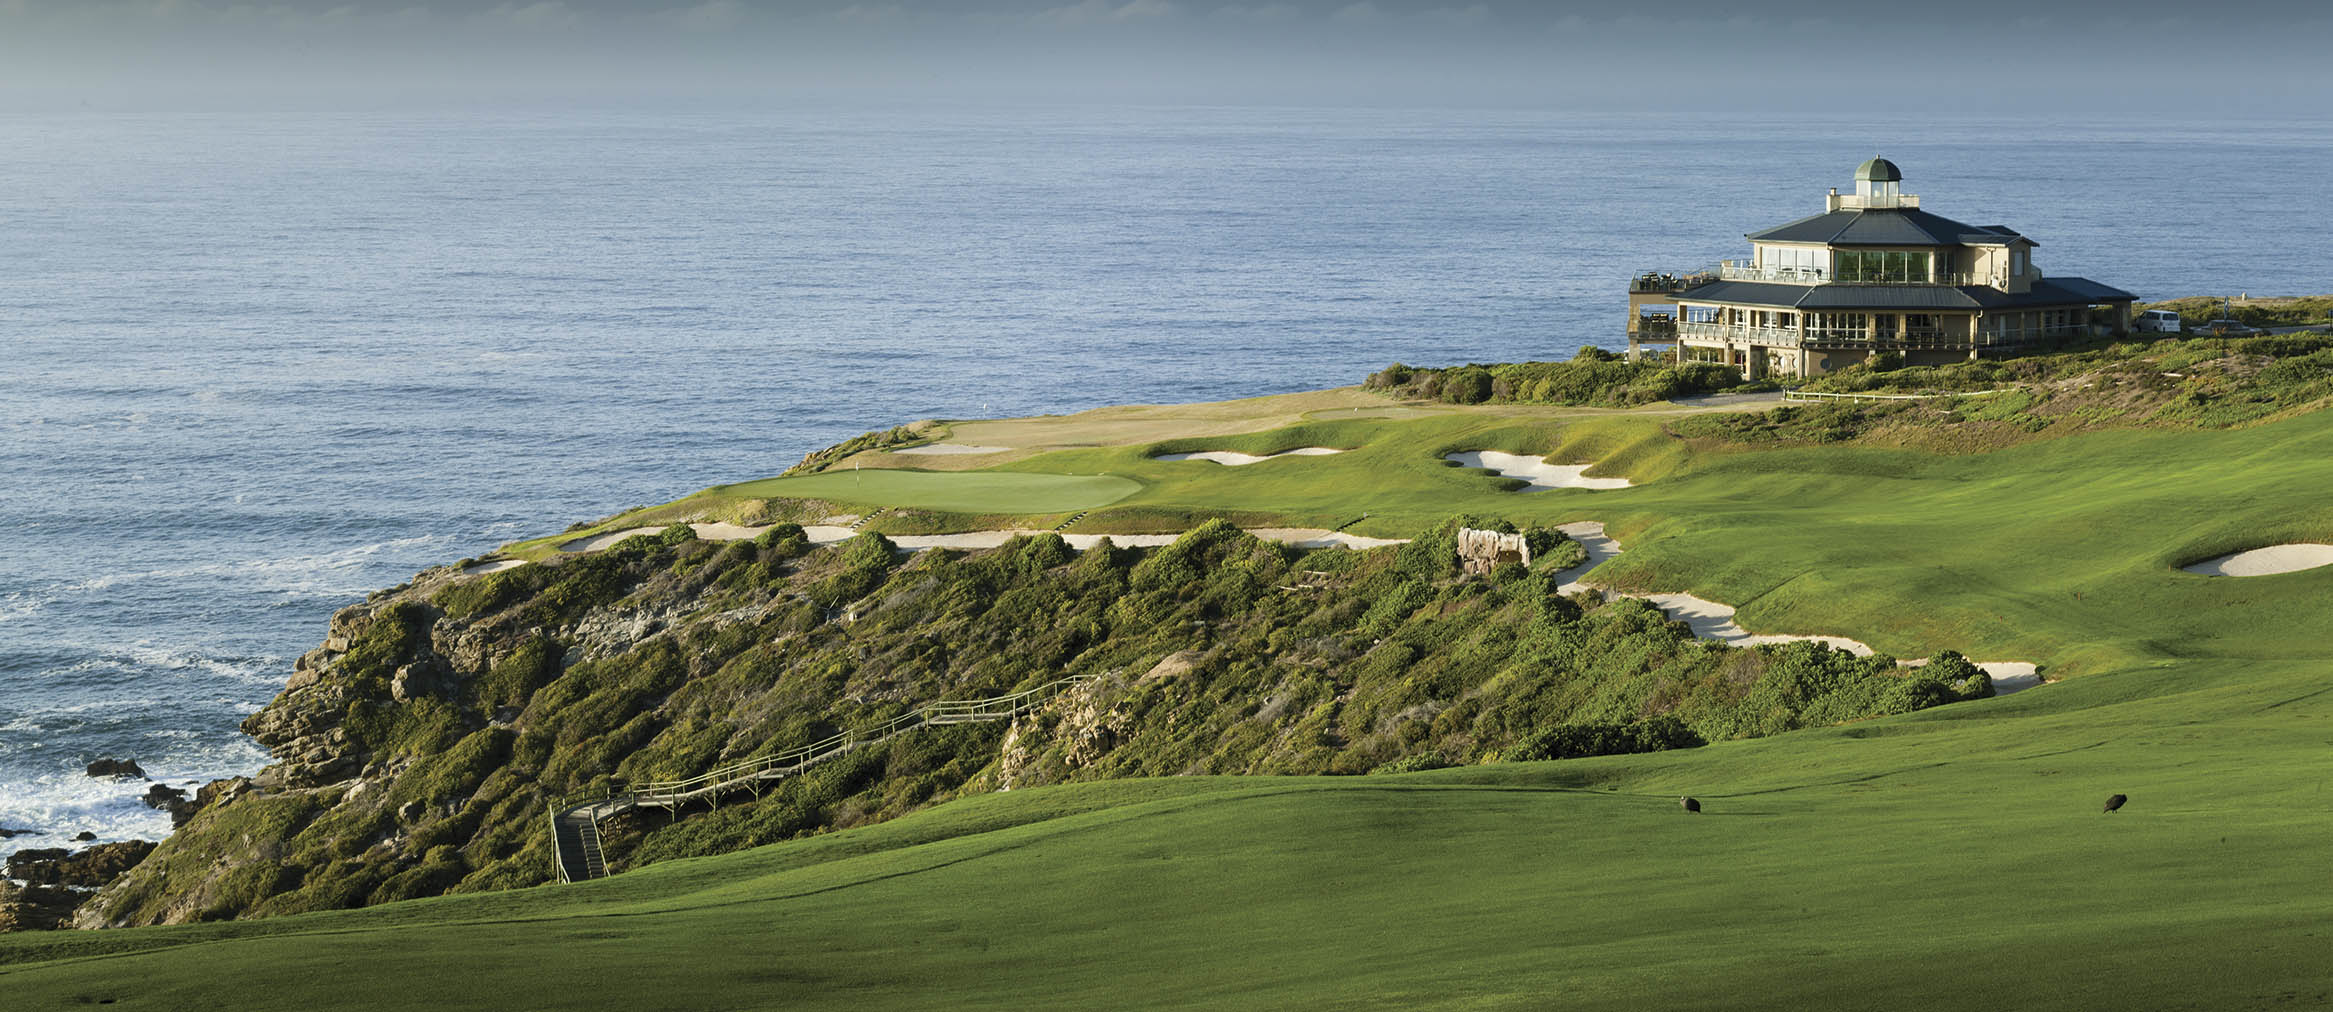 Overview of golf course named Pinnacle Point Beach and Golf Resort